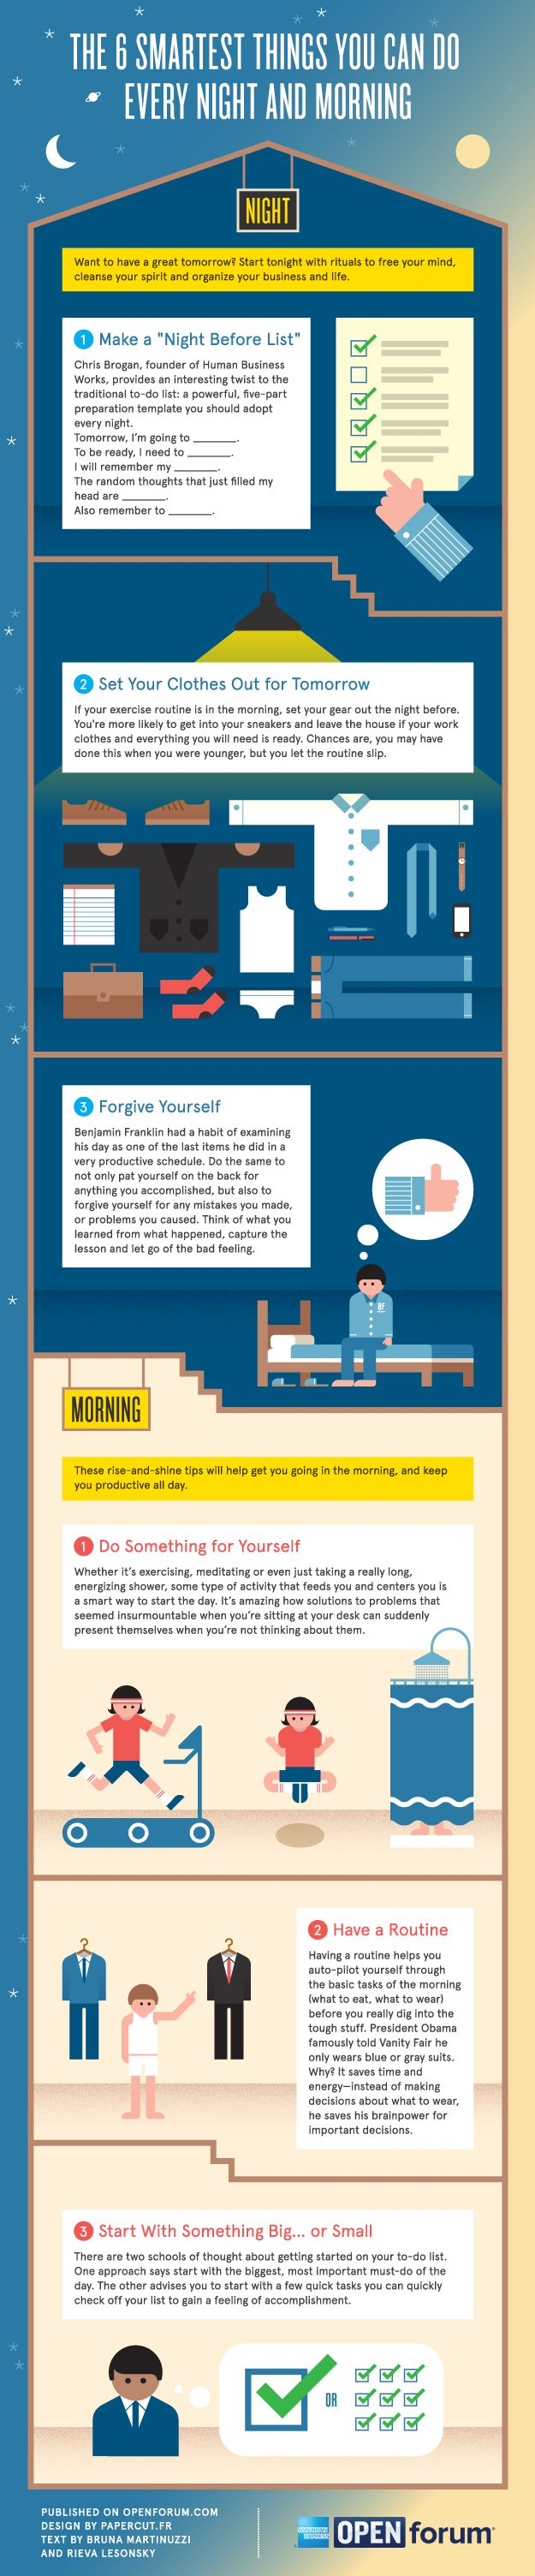 The 6 Smartest Things You Can Do Every Night And Morning | İnfopik #infographic #infopik #planning